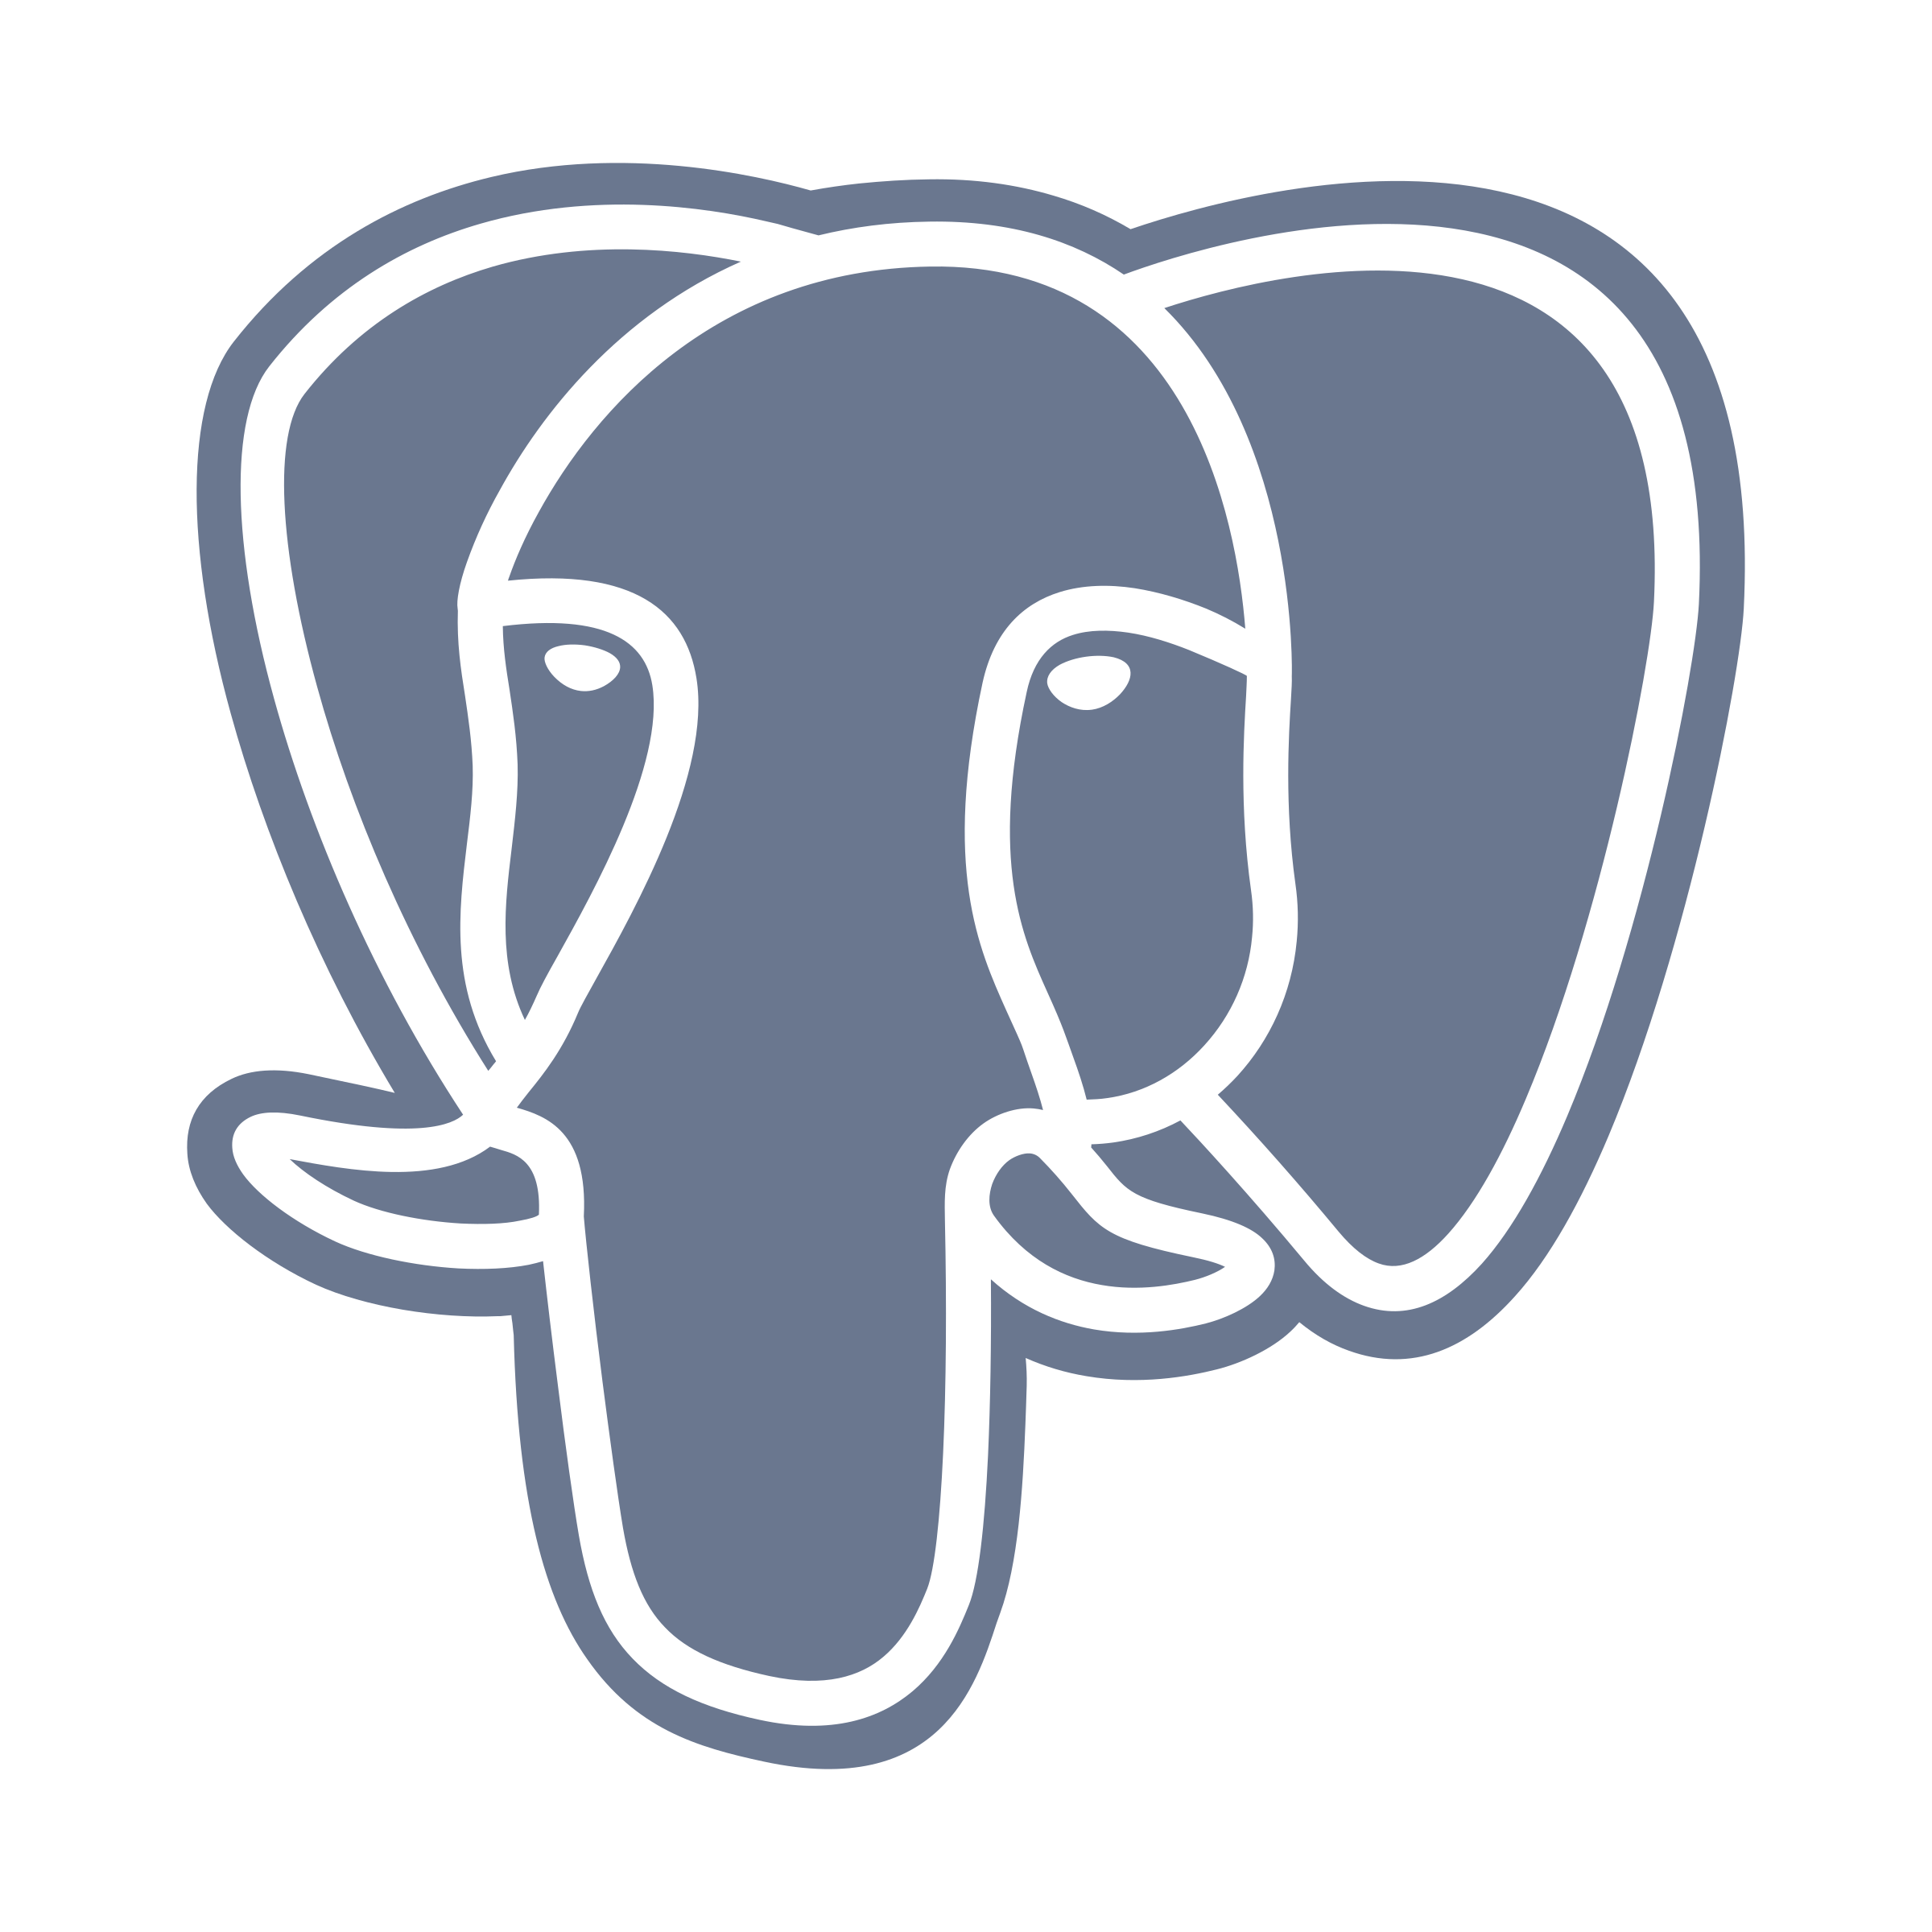 PostgreSQL Inc Logo PNG Transparent & SVG Vector - Freebie